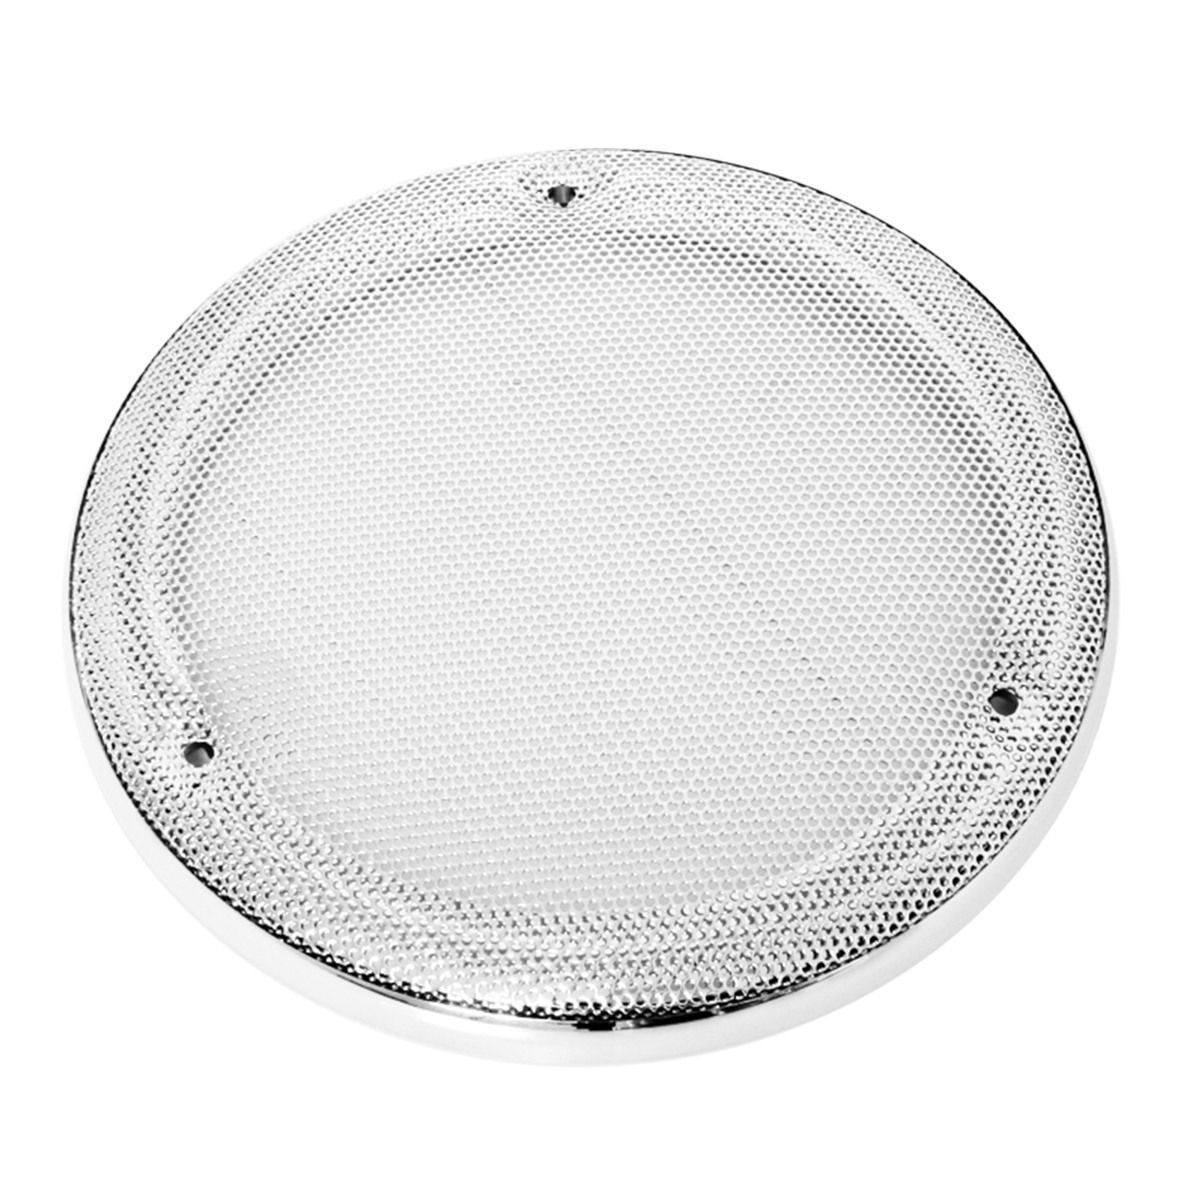 52022 Round Cab Ceiling Speaker Cover for Kenworth